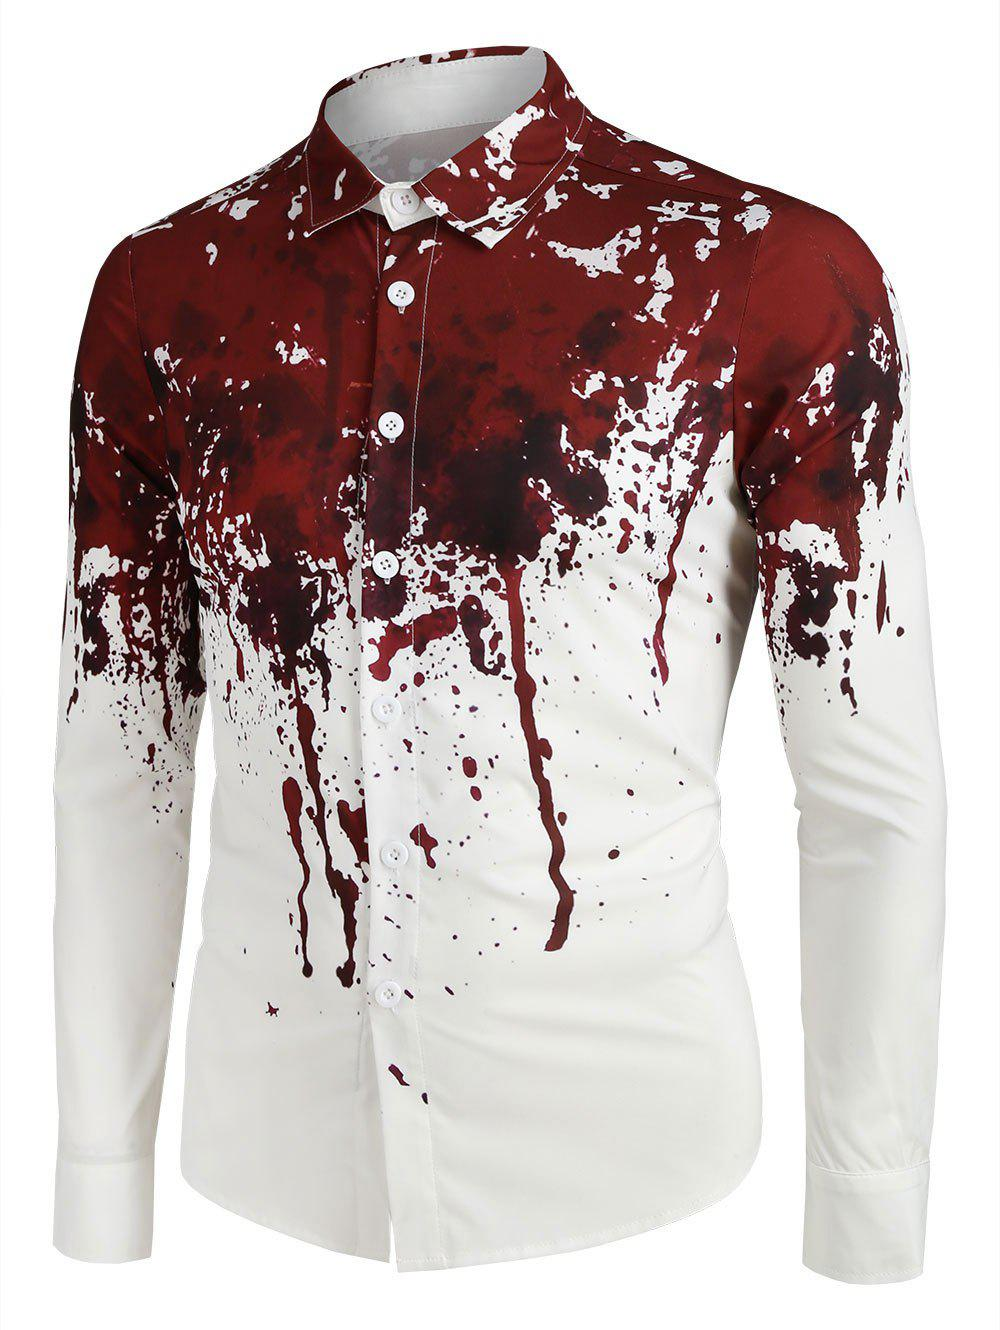 Hot Halloween Blood Splatter Print Long Sleeve Button Up Shirt